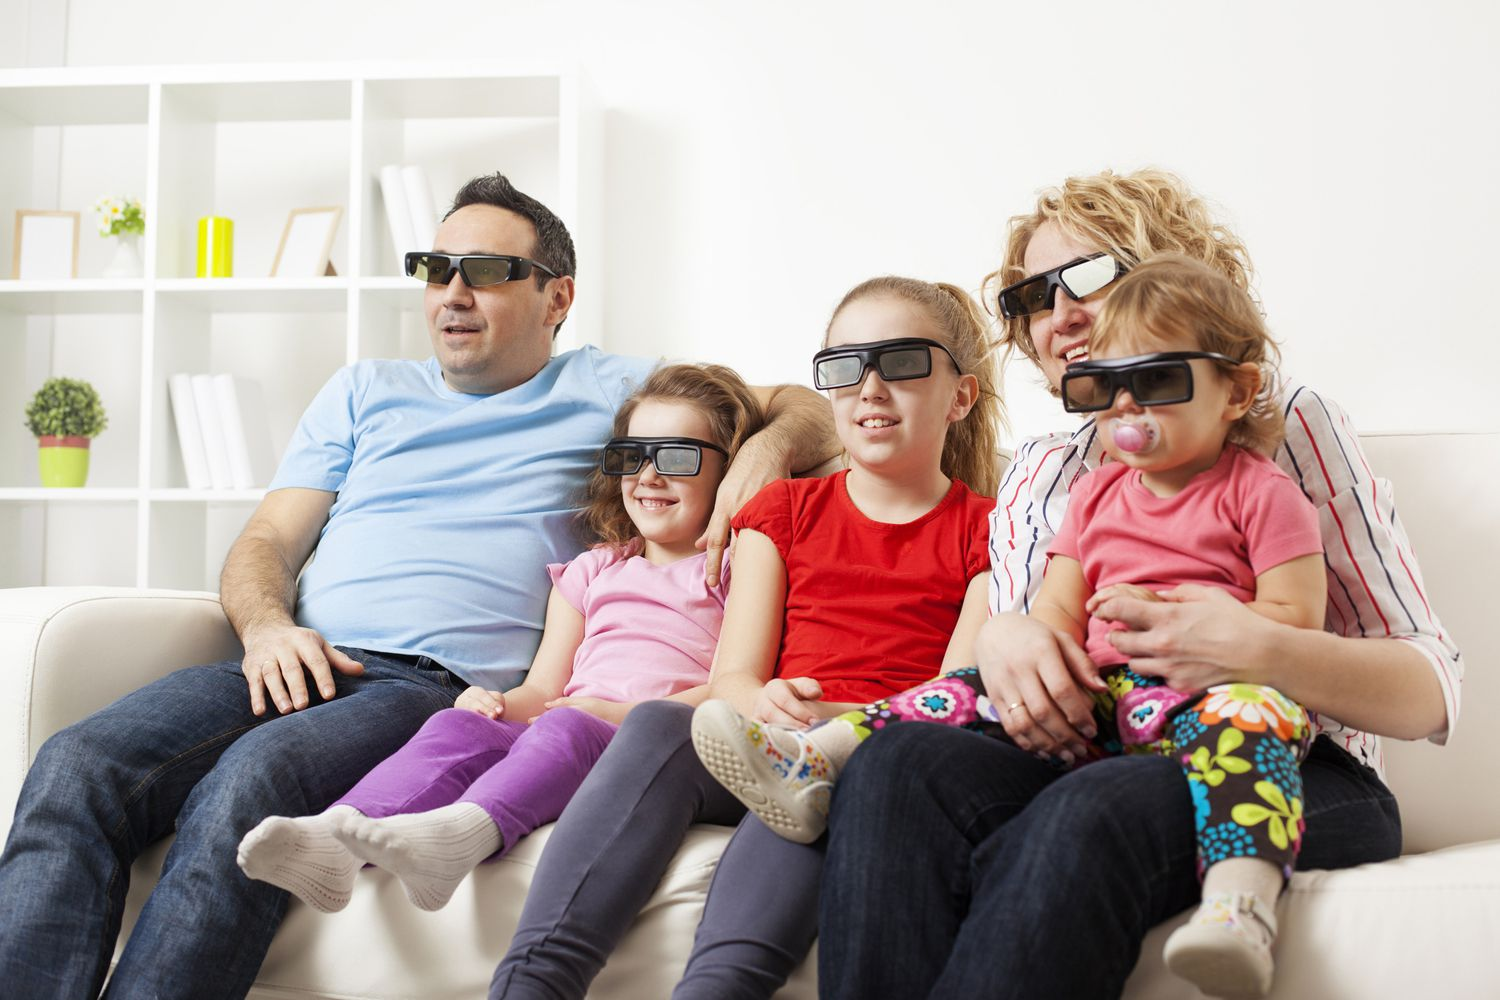 Get the Most Out of a Home 3D Viewing Experience